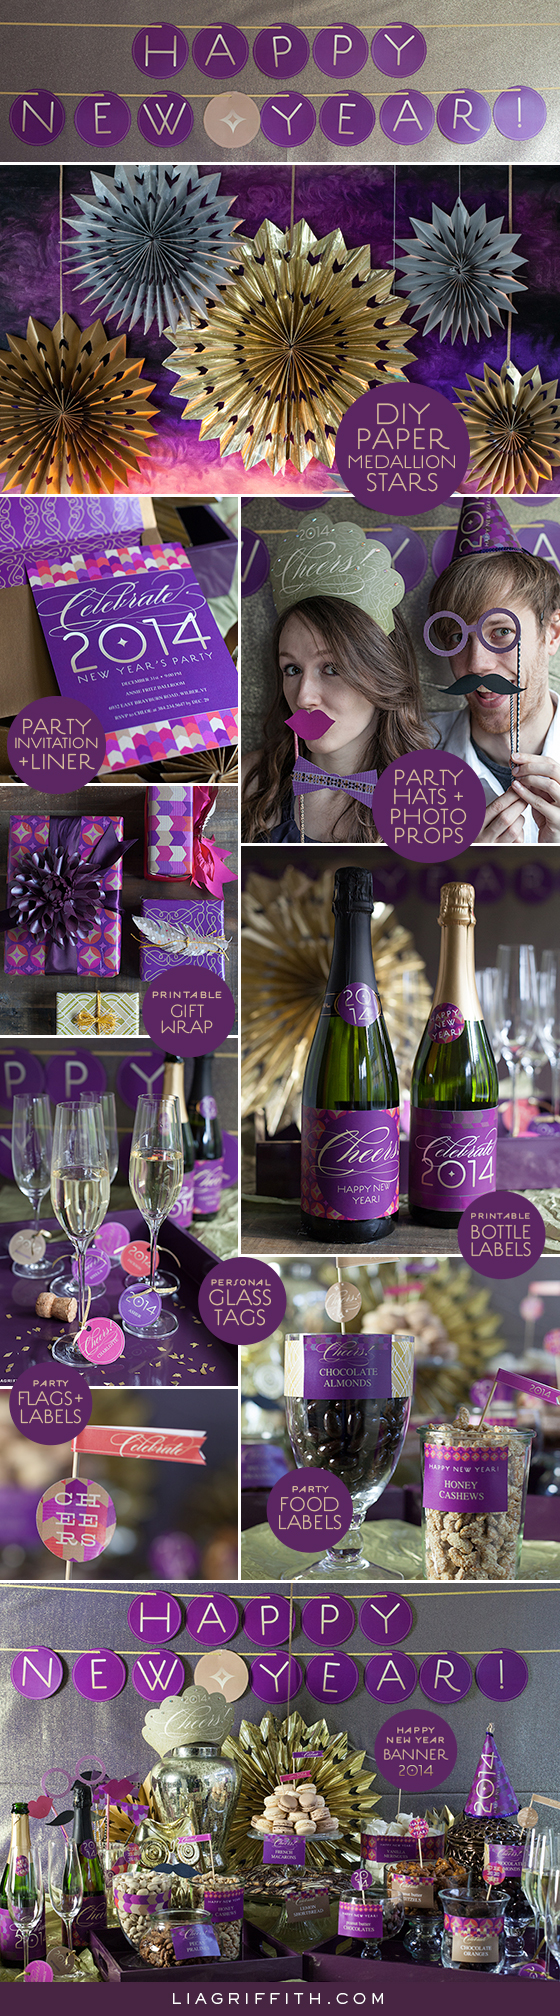 New Year Party Roundup